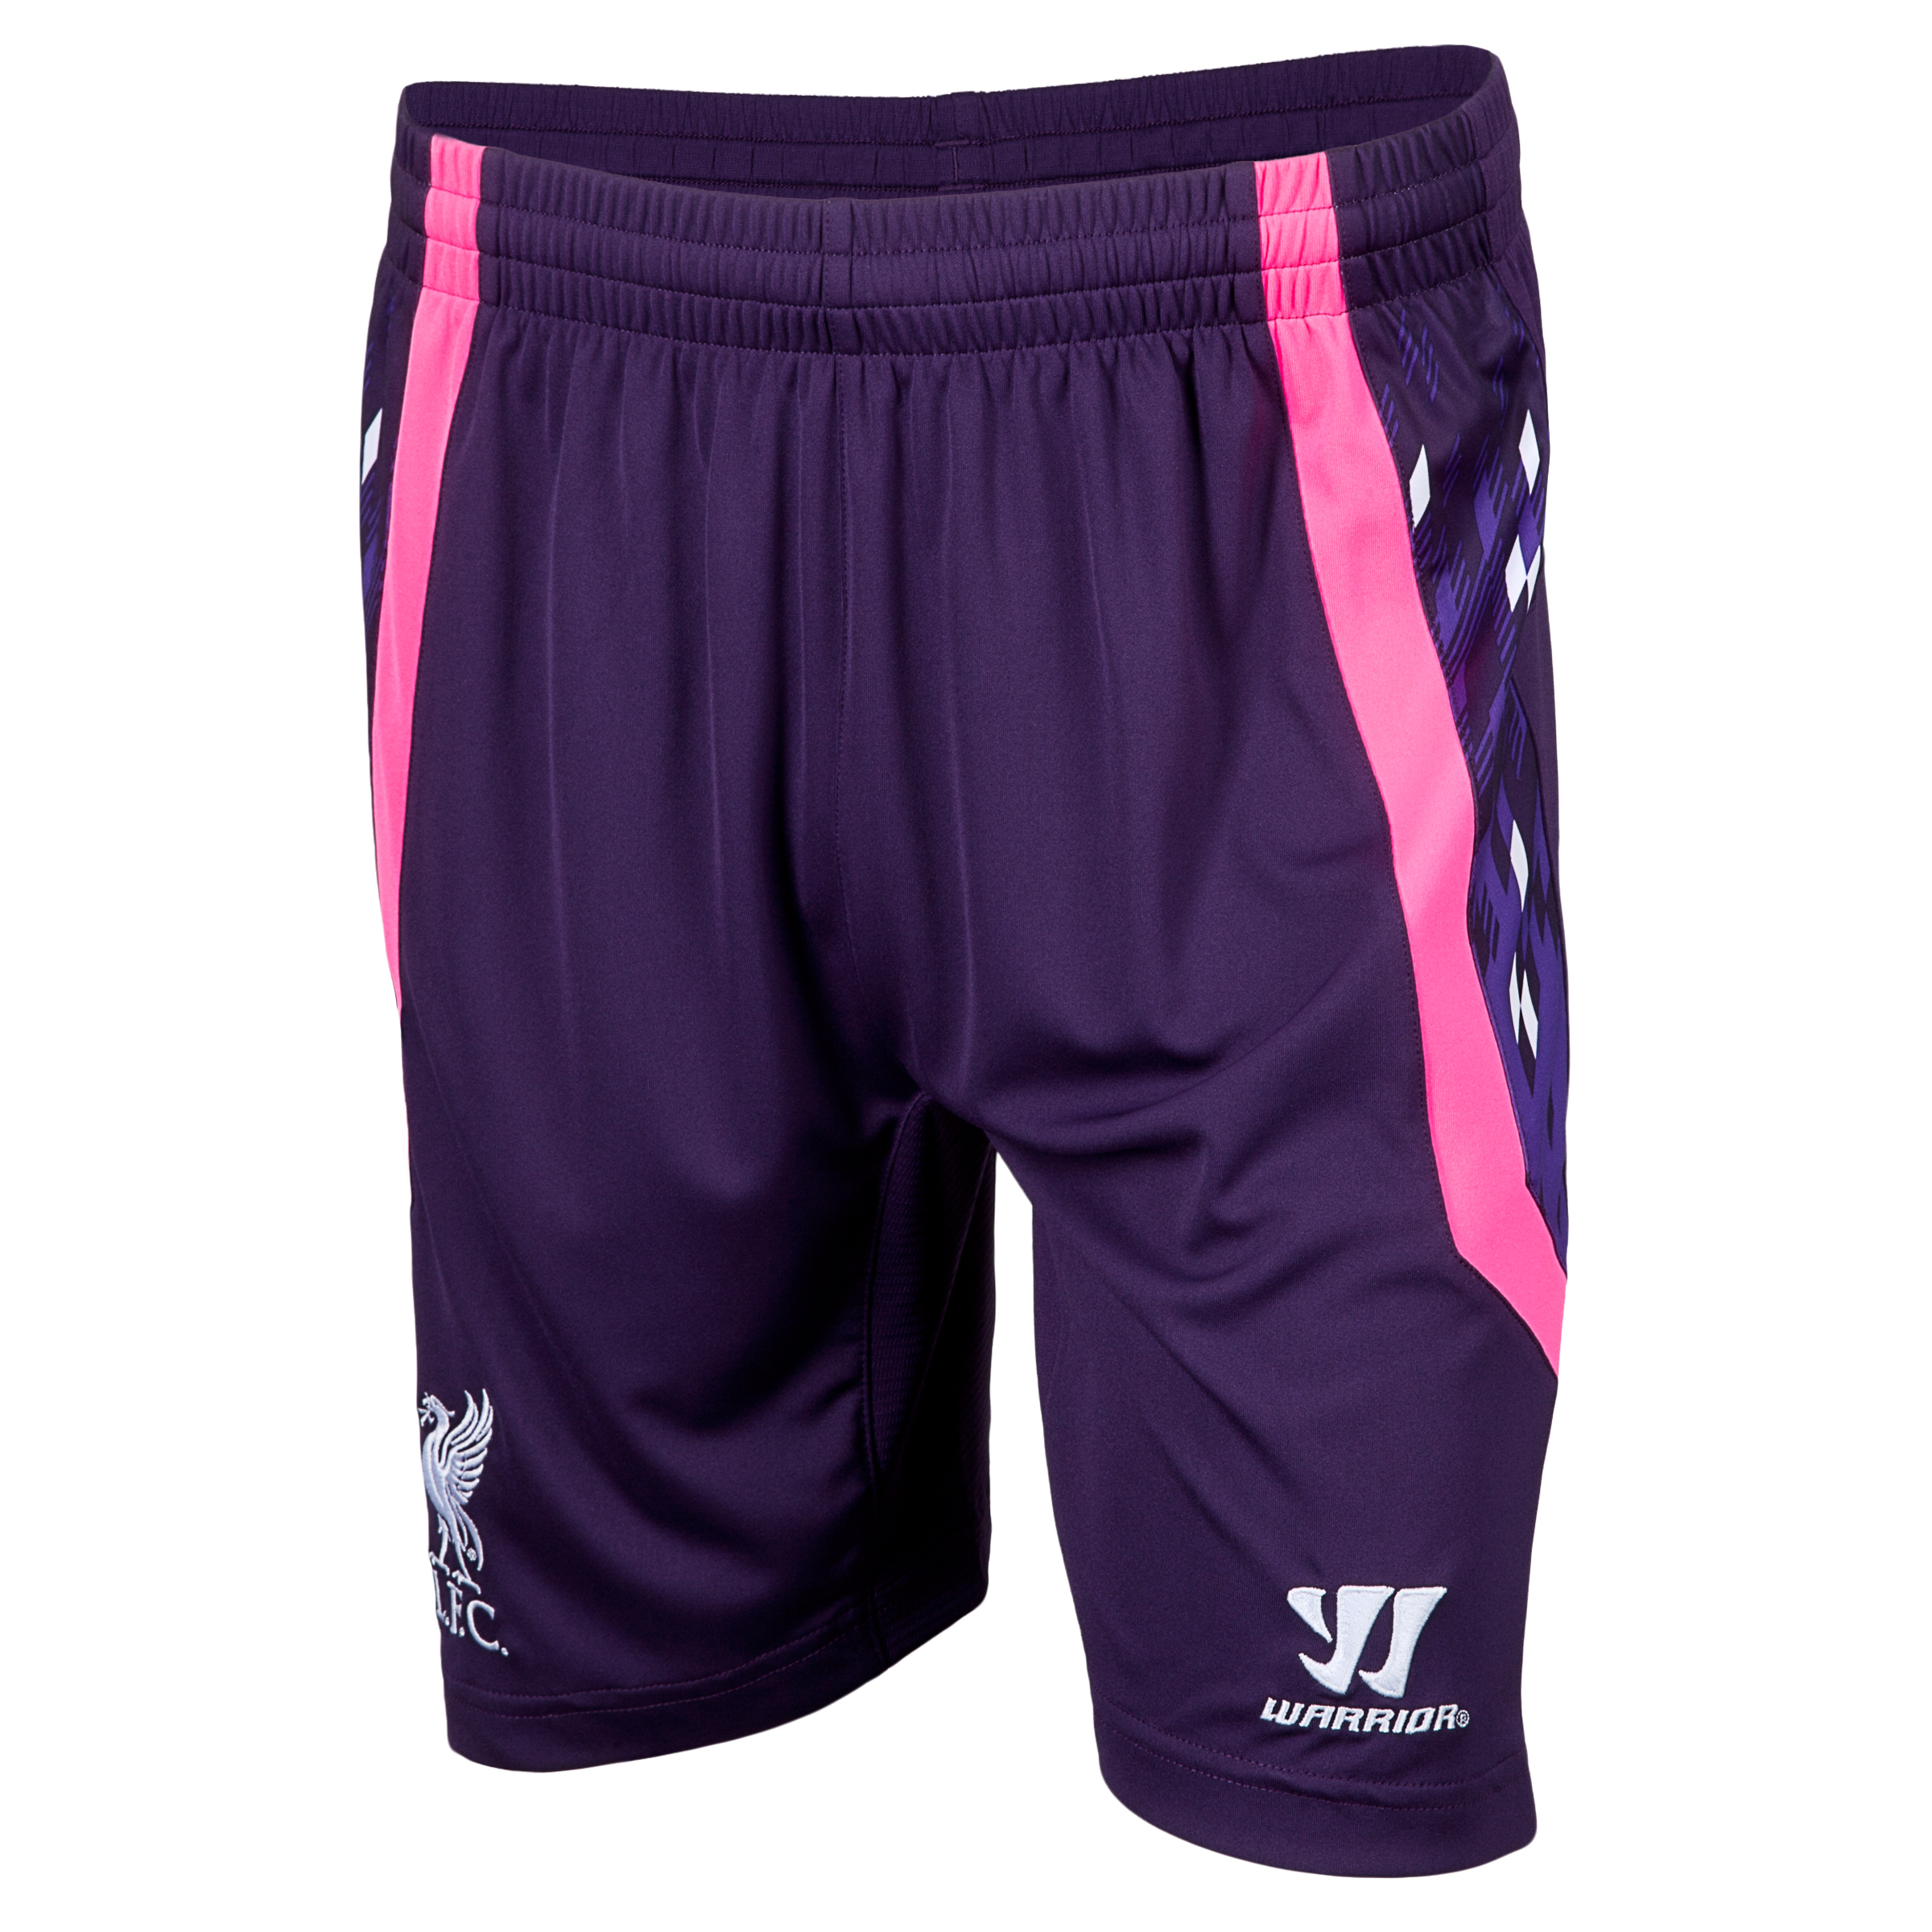 Liverpool Away Goalkeeper Shorts 2013/14